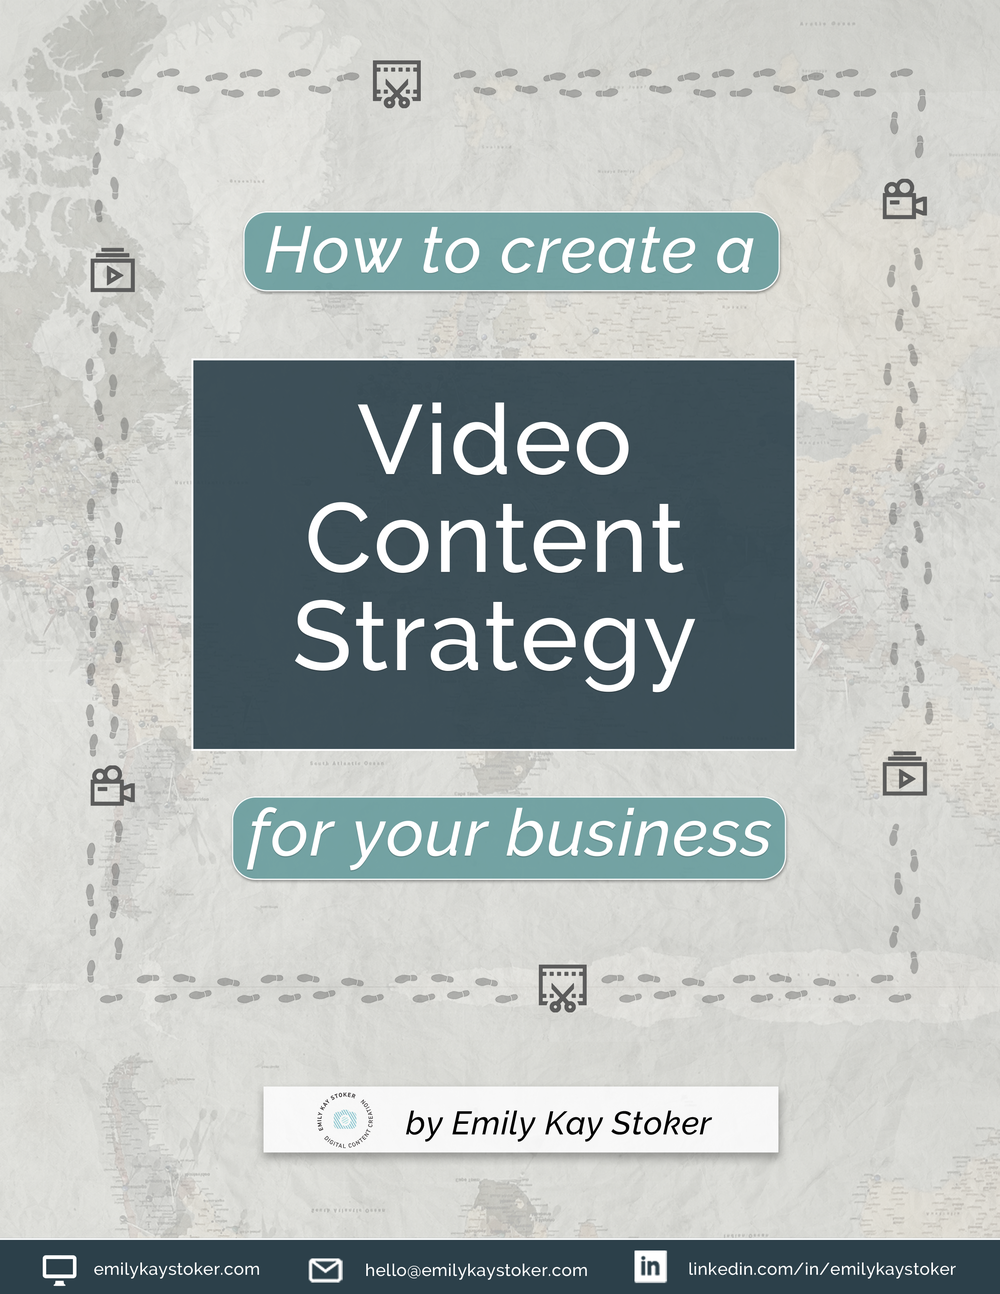 how to create a video content strategy for your business free download emily kay stoker